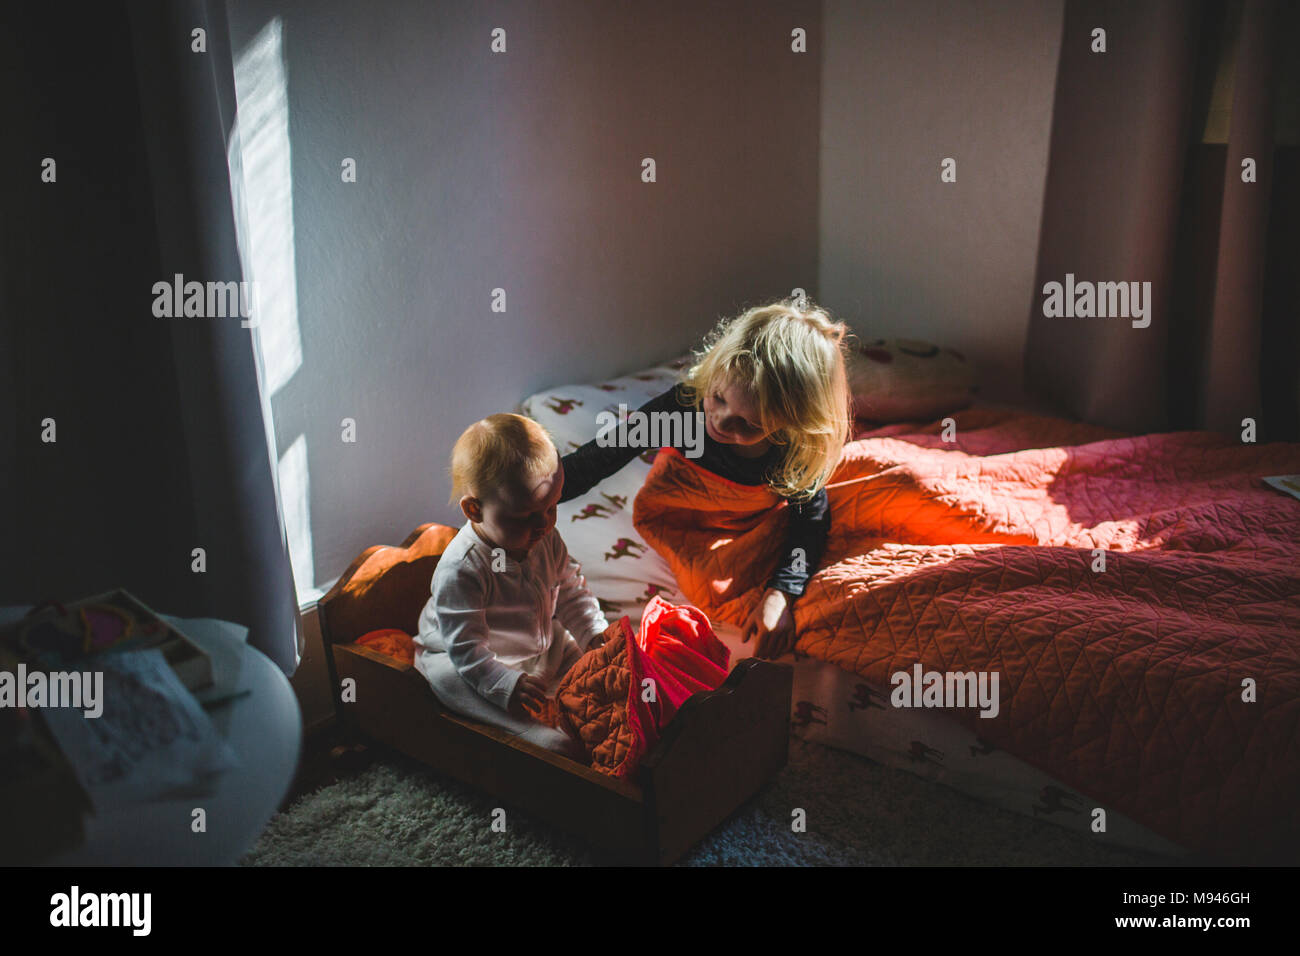 Girl and baby holding each other in separate beds - Stock Image